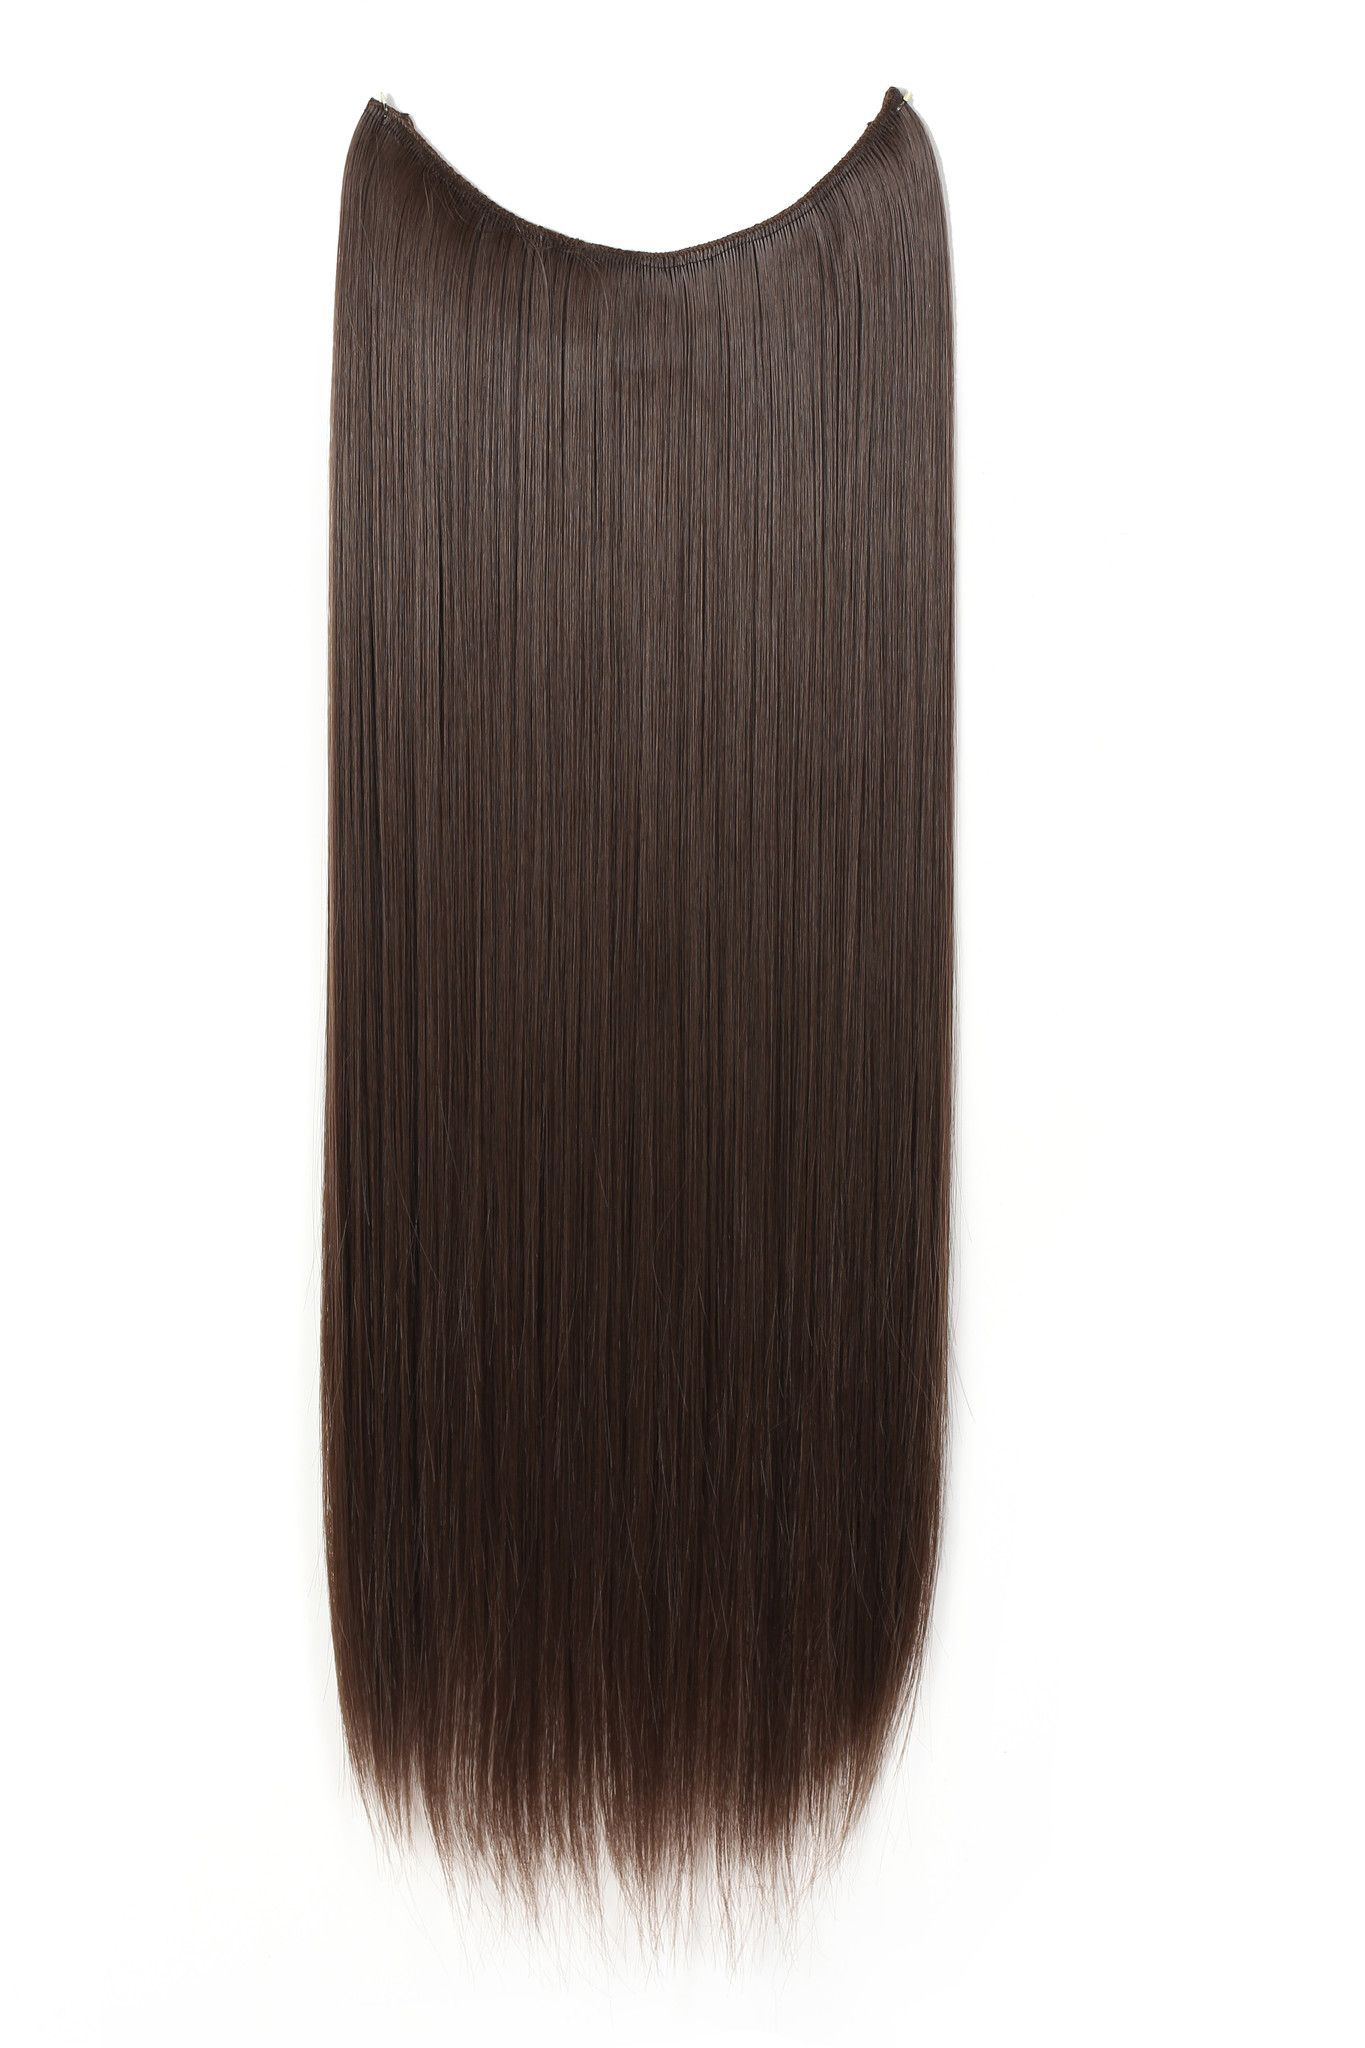 24 Straight Synthetic Hair Extensions Transparent Wire No Clips